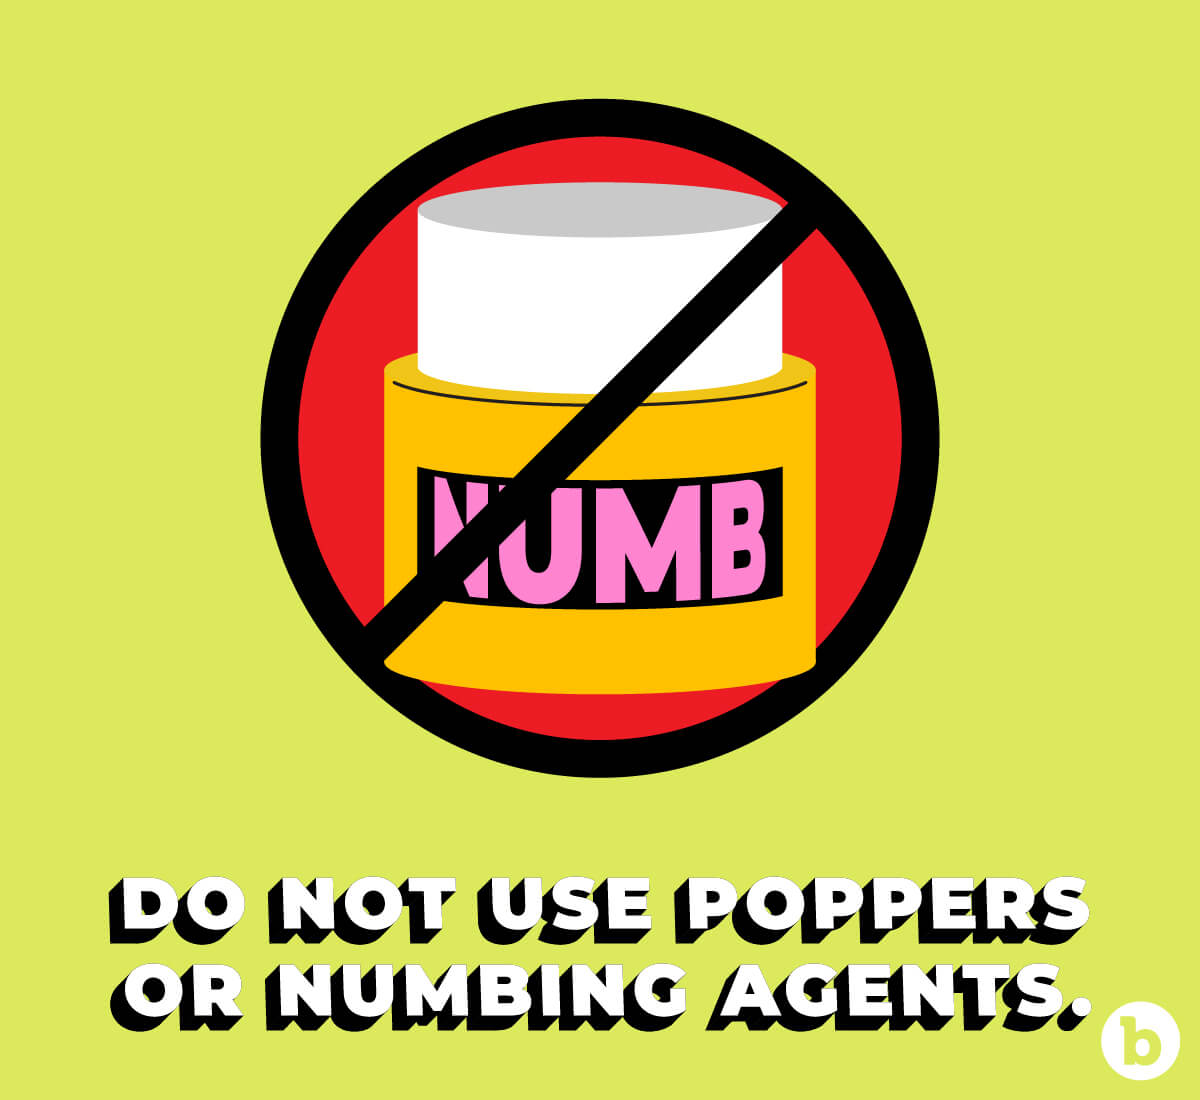 Avoid using poppers and numbing agents during anal sex